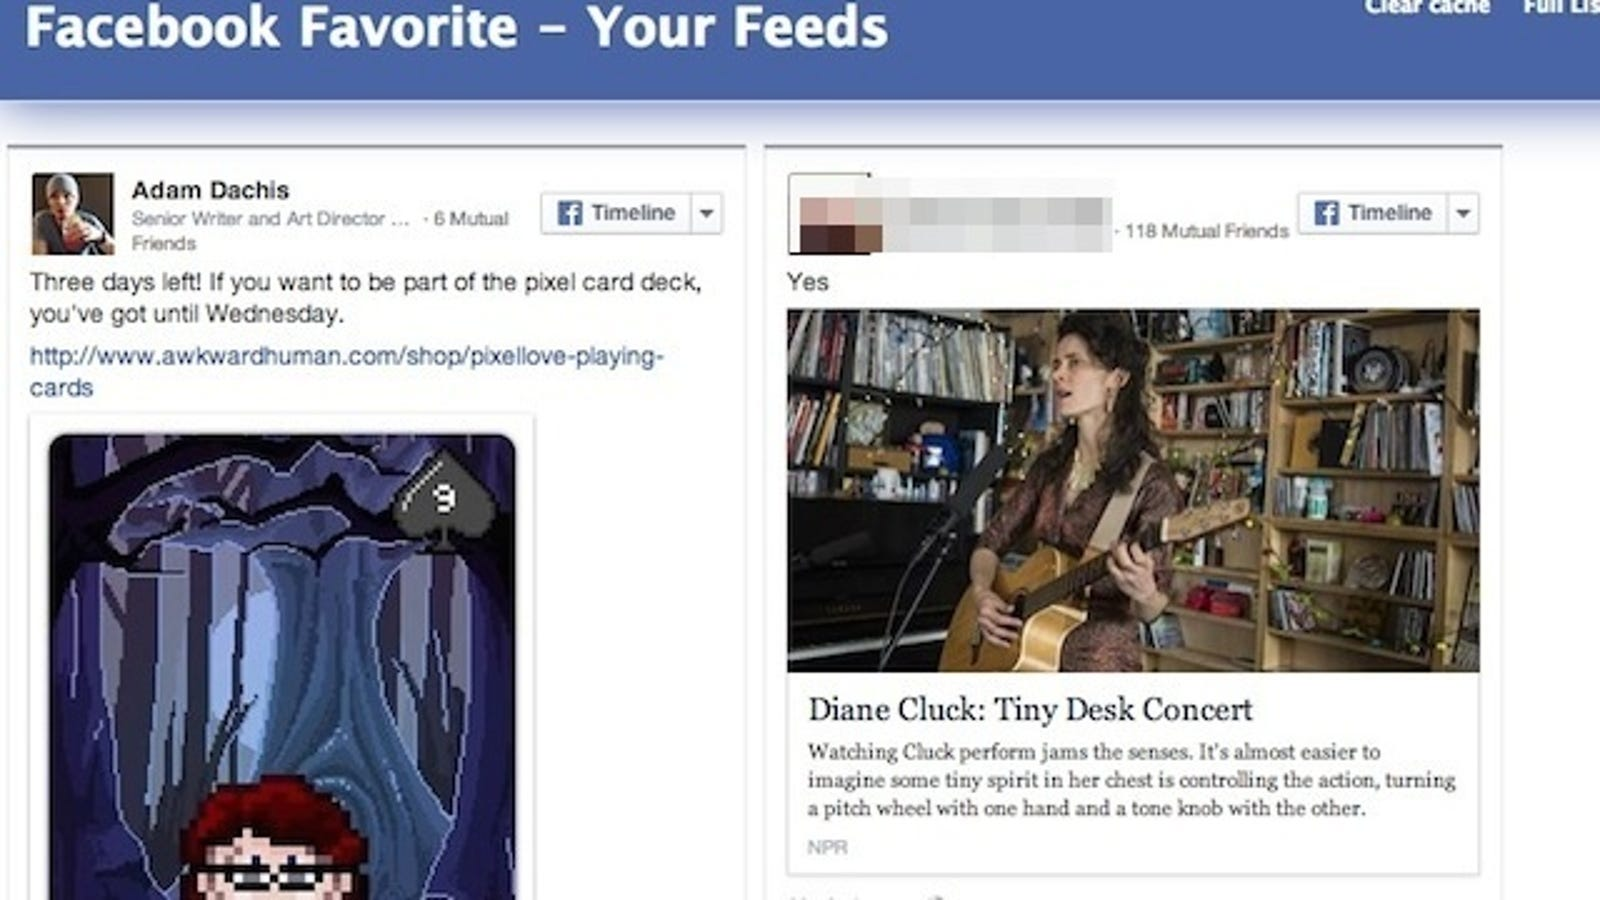 Facebook Favorite Saves Facebook Posts for Later